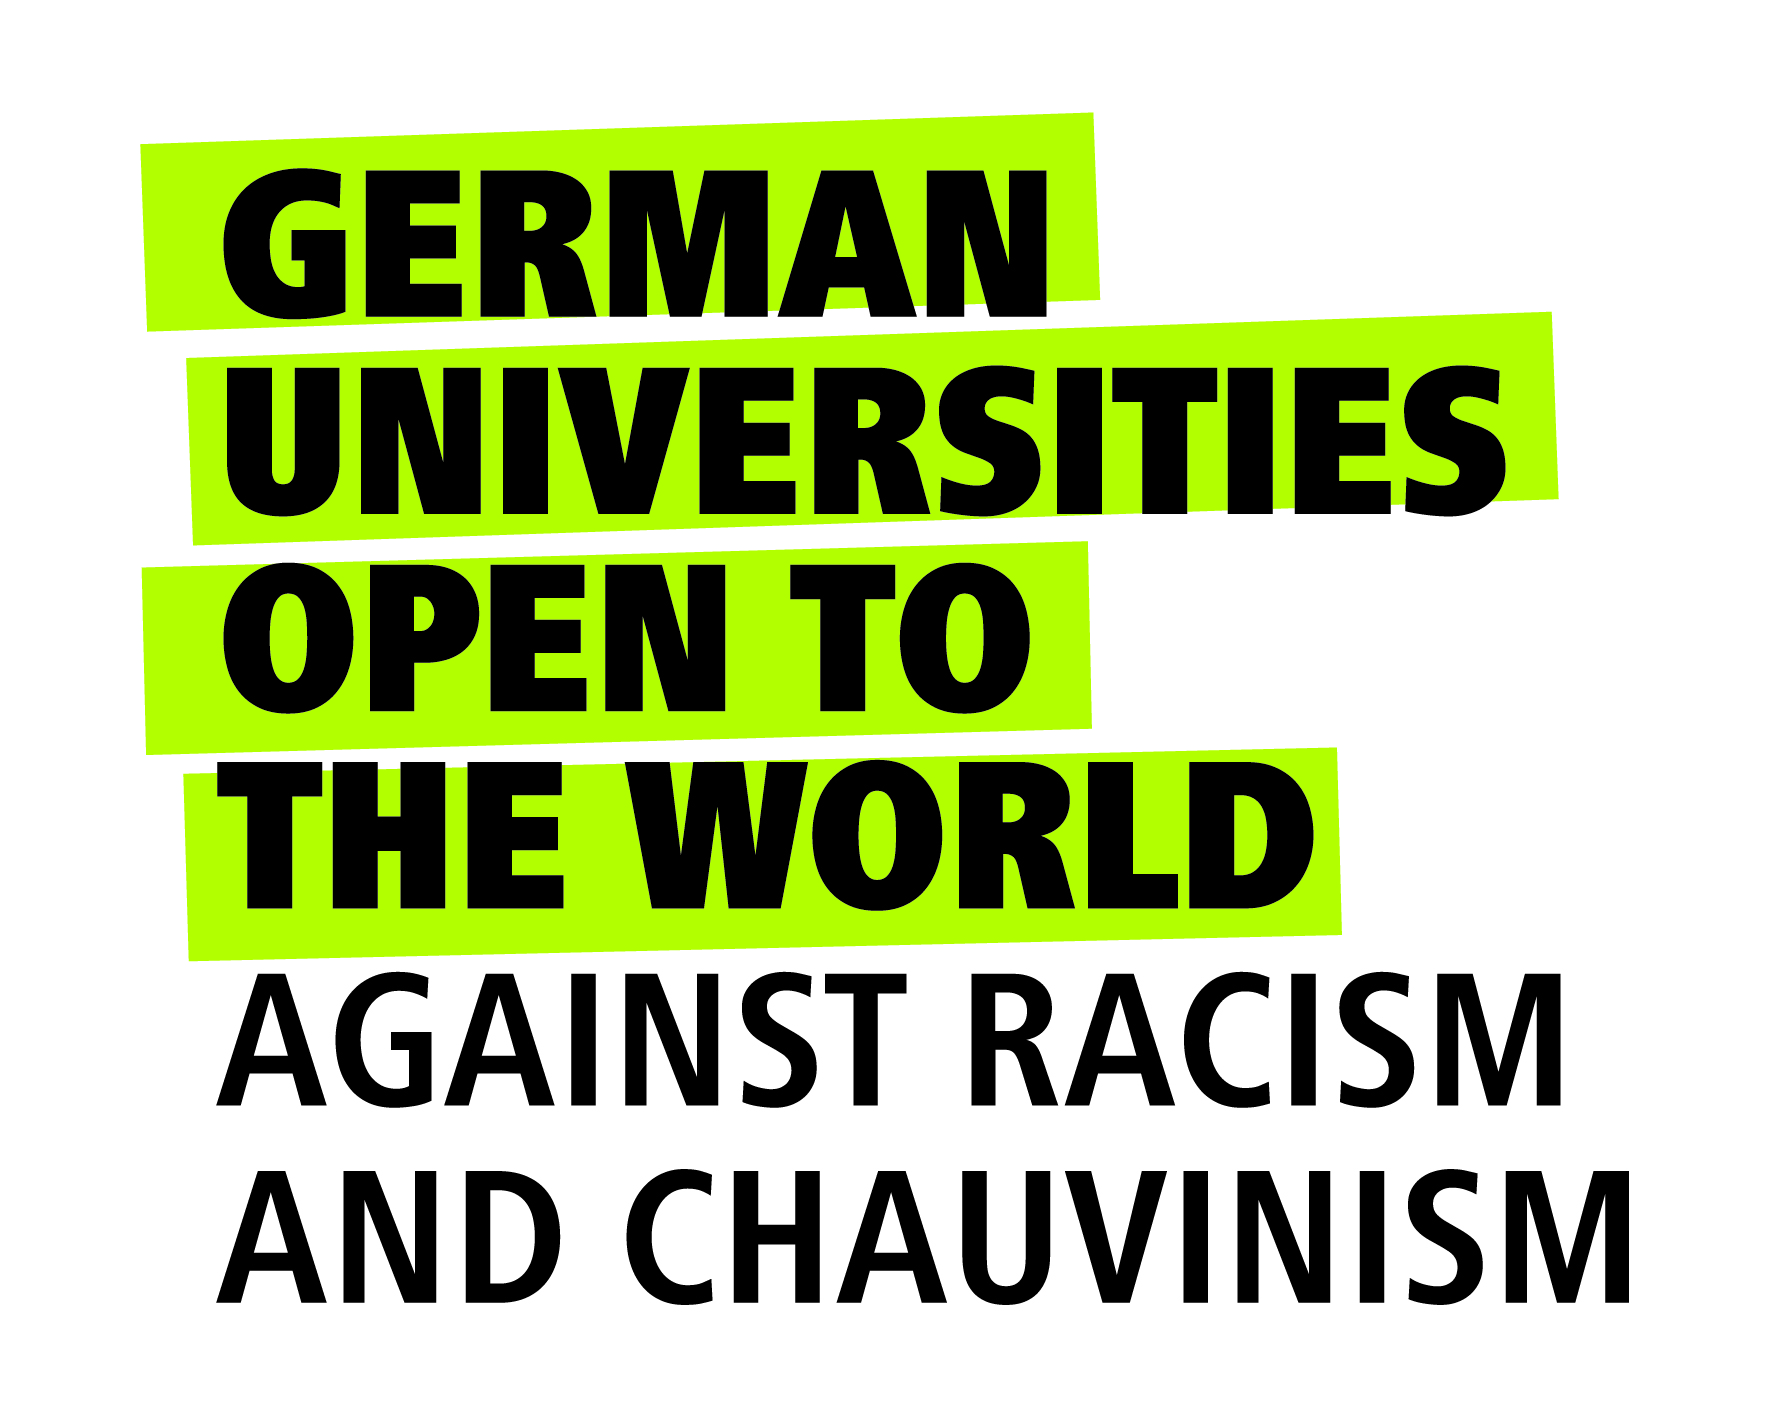 German universities open to the world